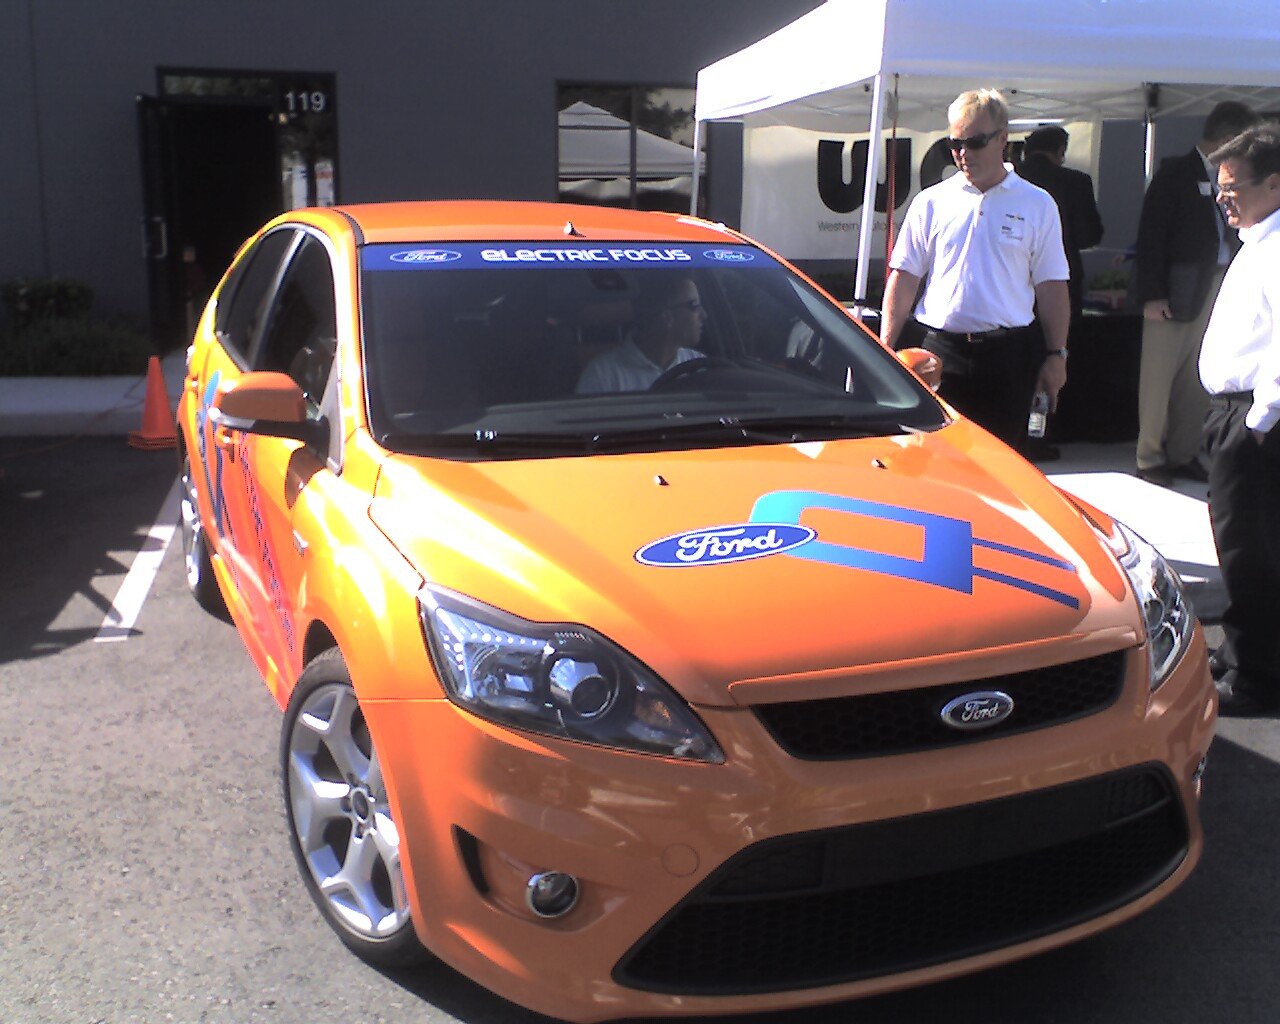 Ford focus electric cars from new green michigan plant